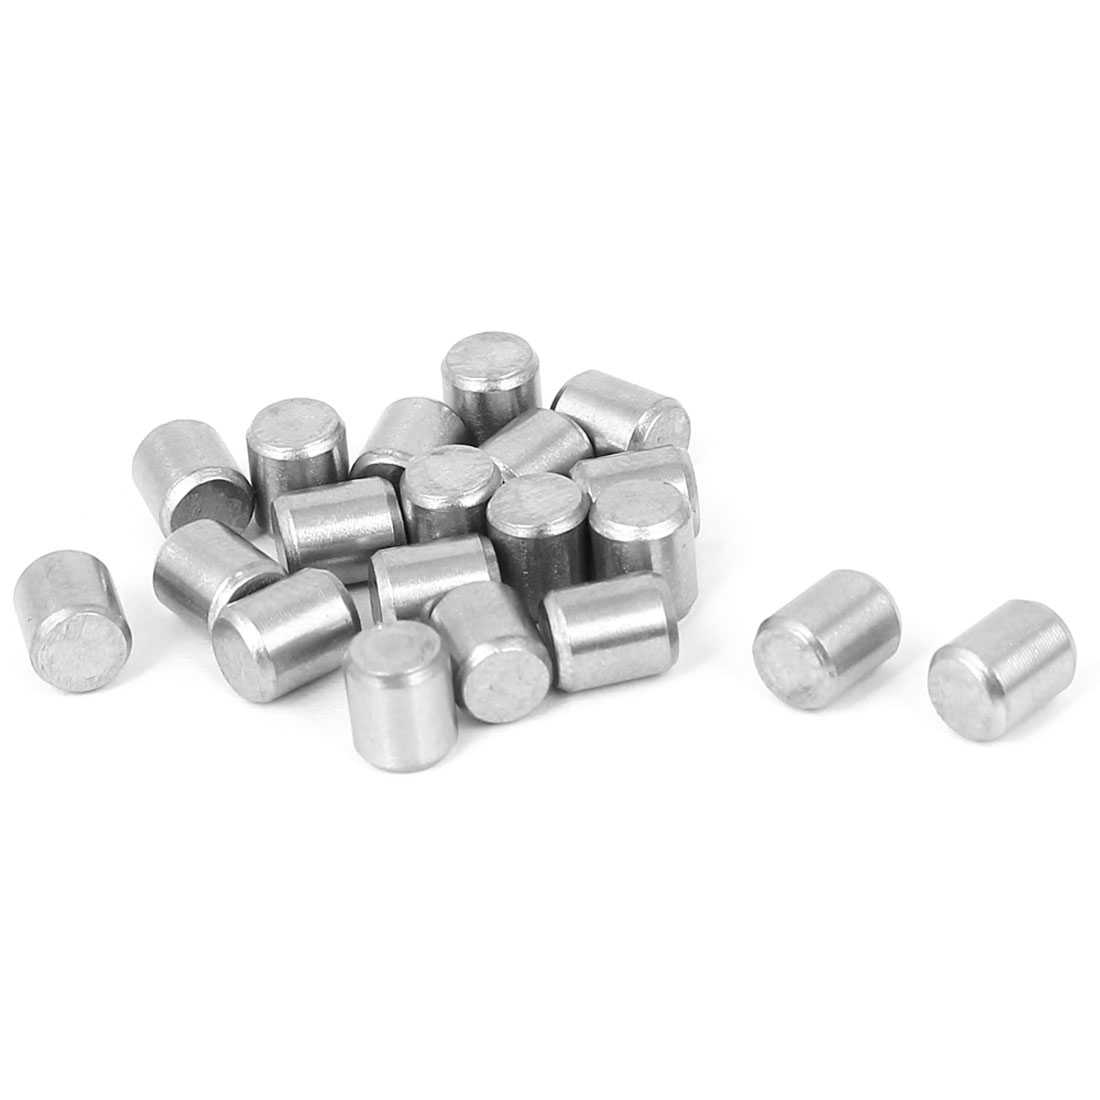 M5x6mm Stainless Steel Parallel Dowel Pins Fastener Elements 20pcs